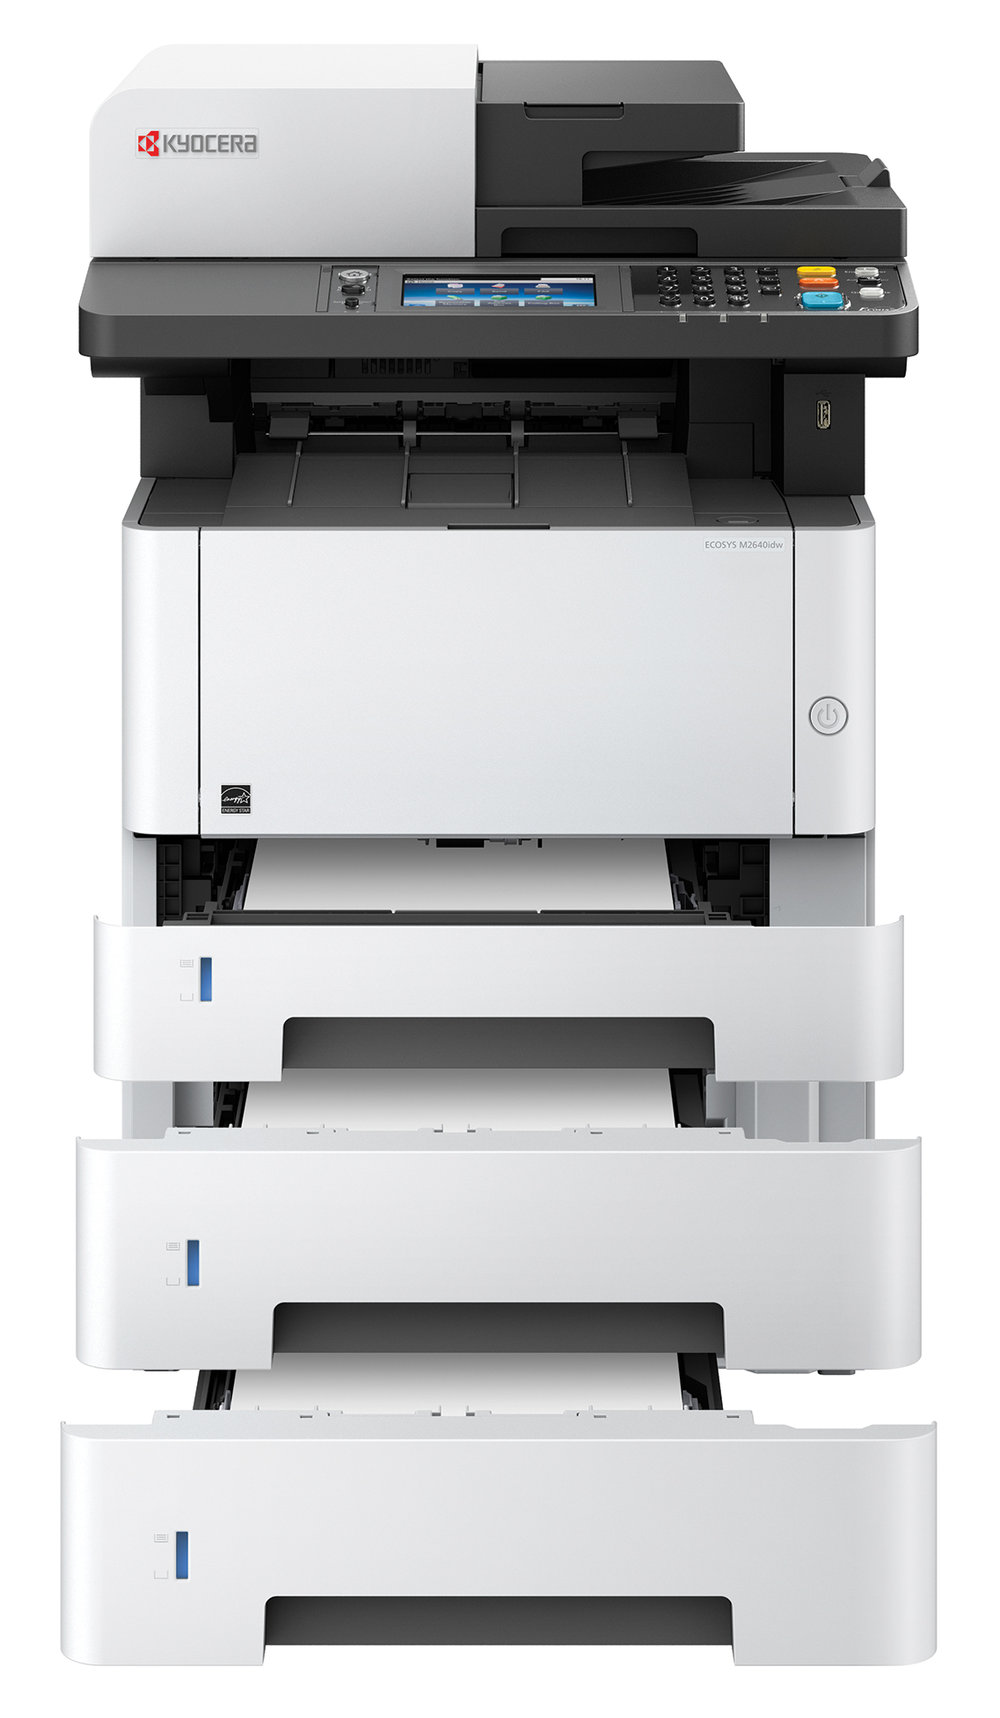 The Ecosys M2640idw with x2 optional 250 sheet cassettes